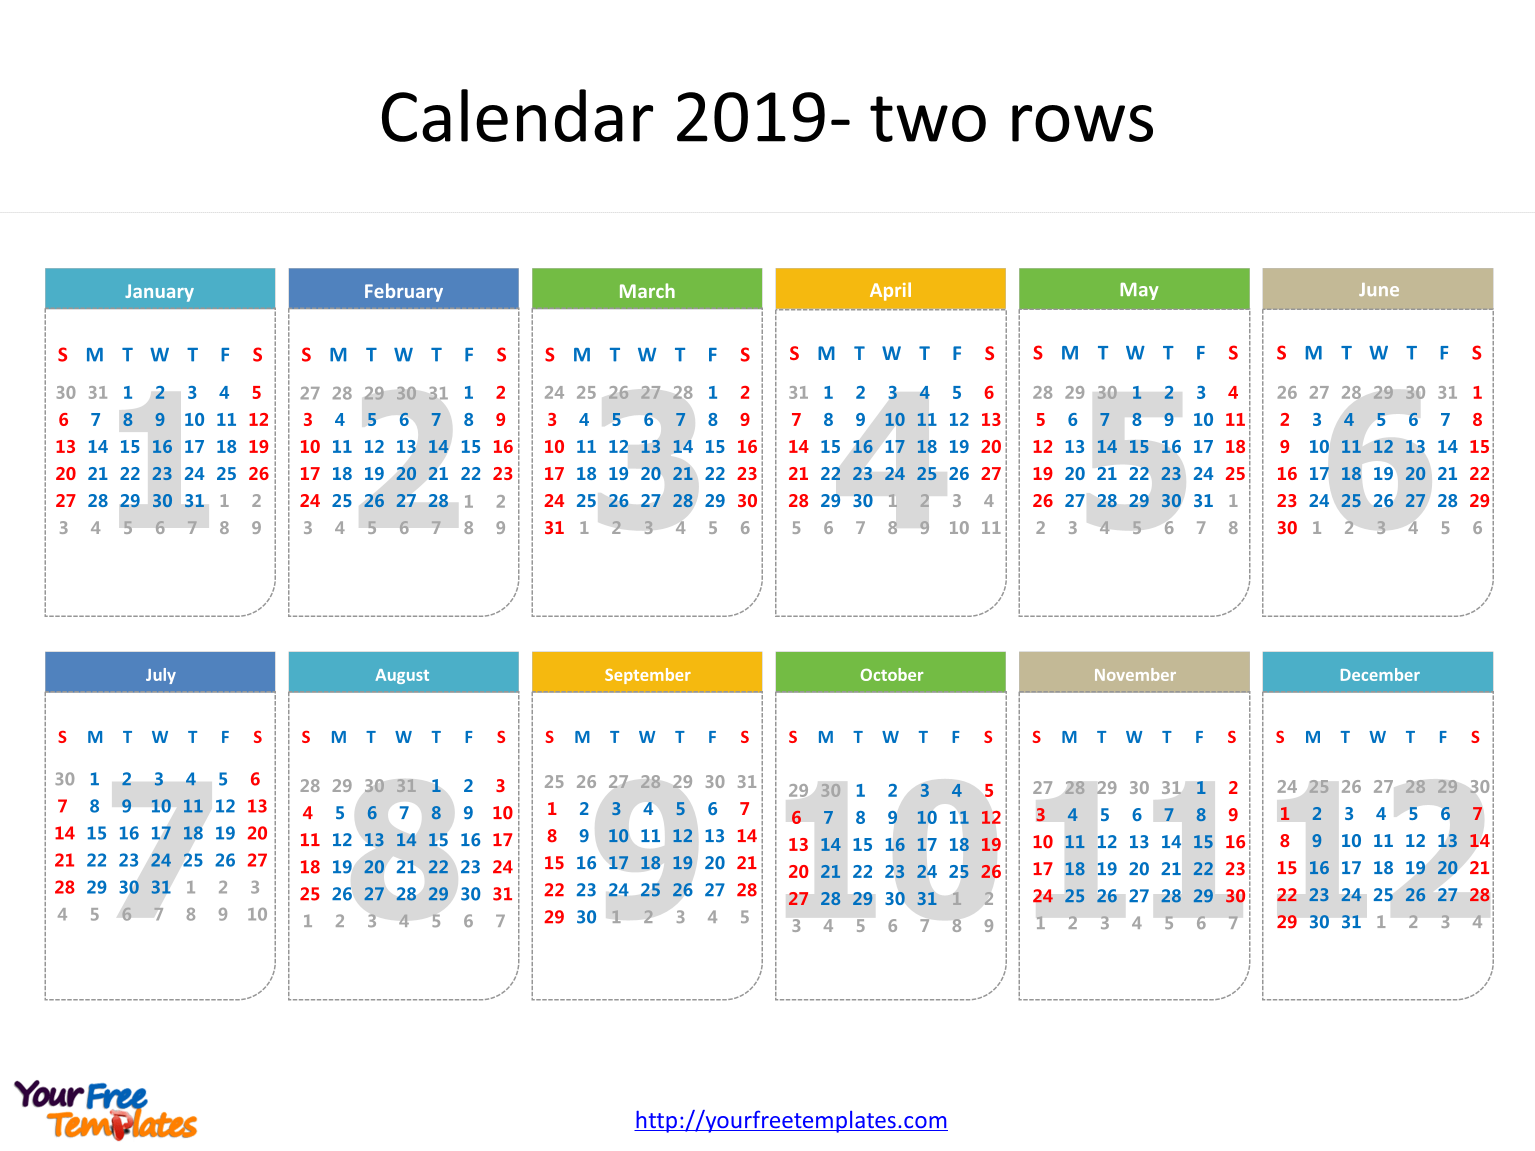 2019 Calendar Dates Printable calendar 2019 template   Free PowerPoint Templates